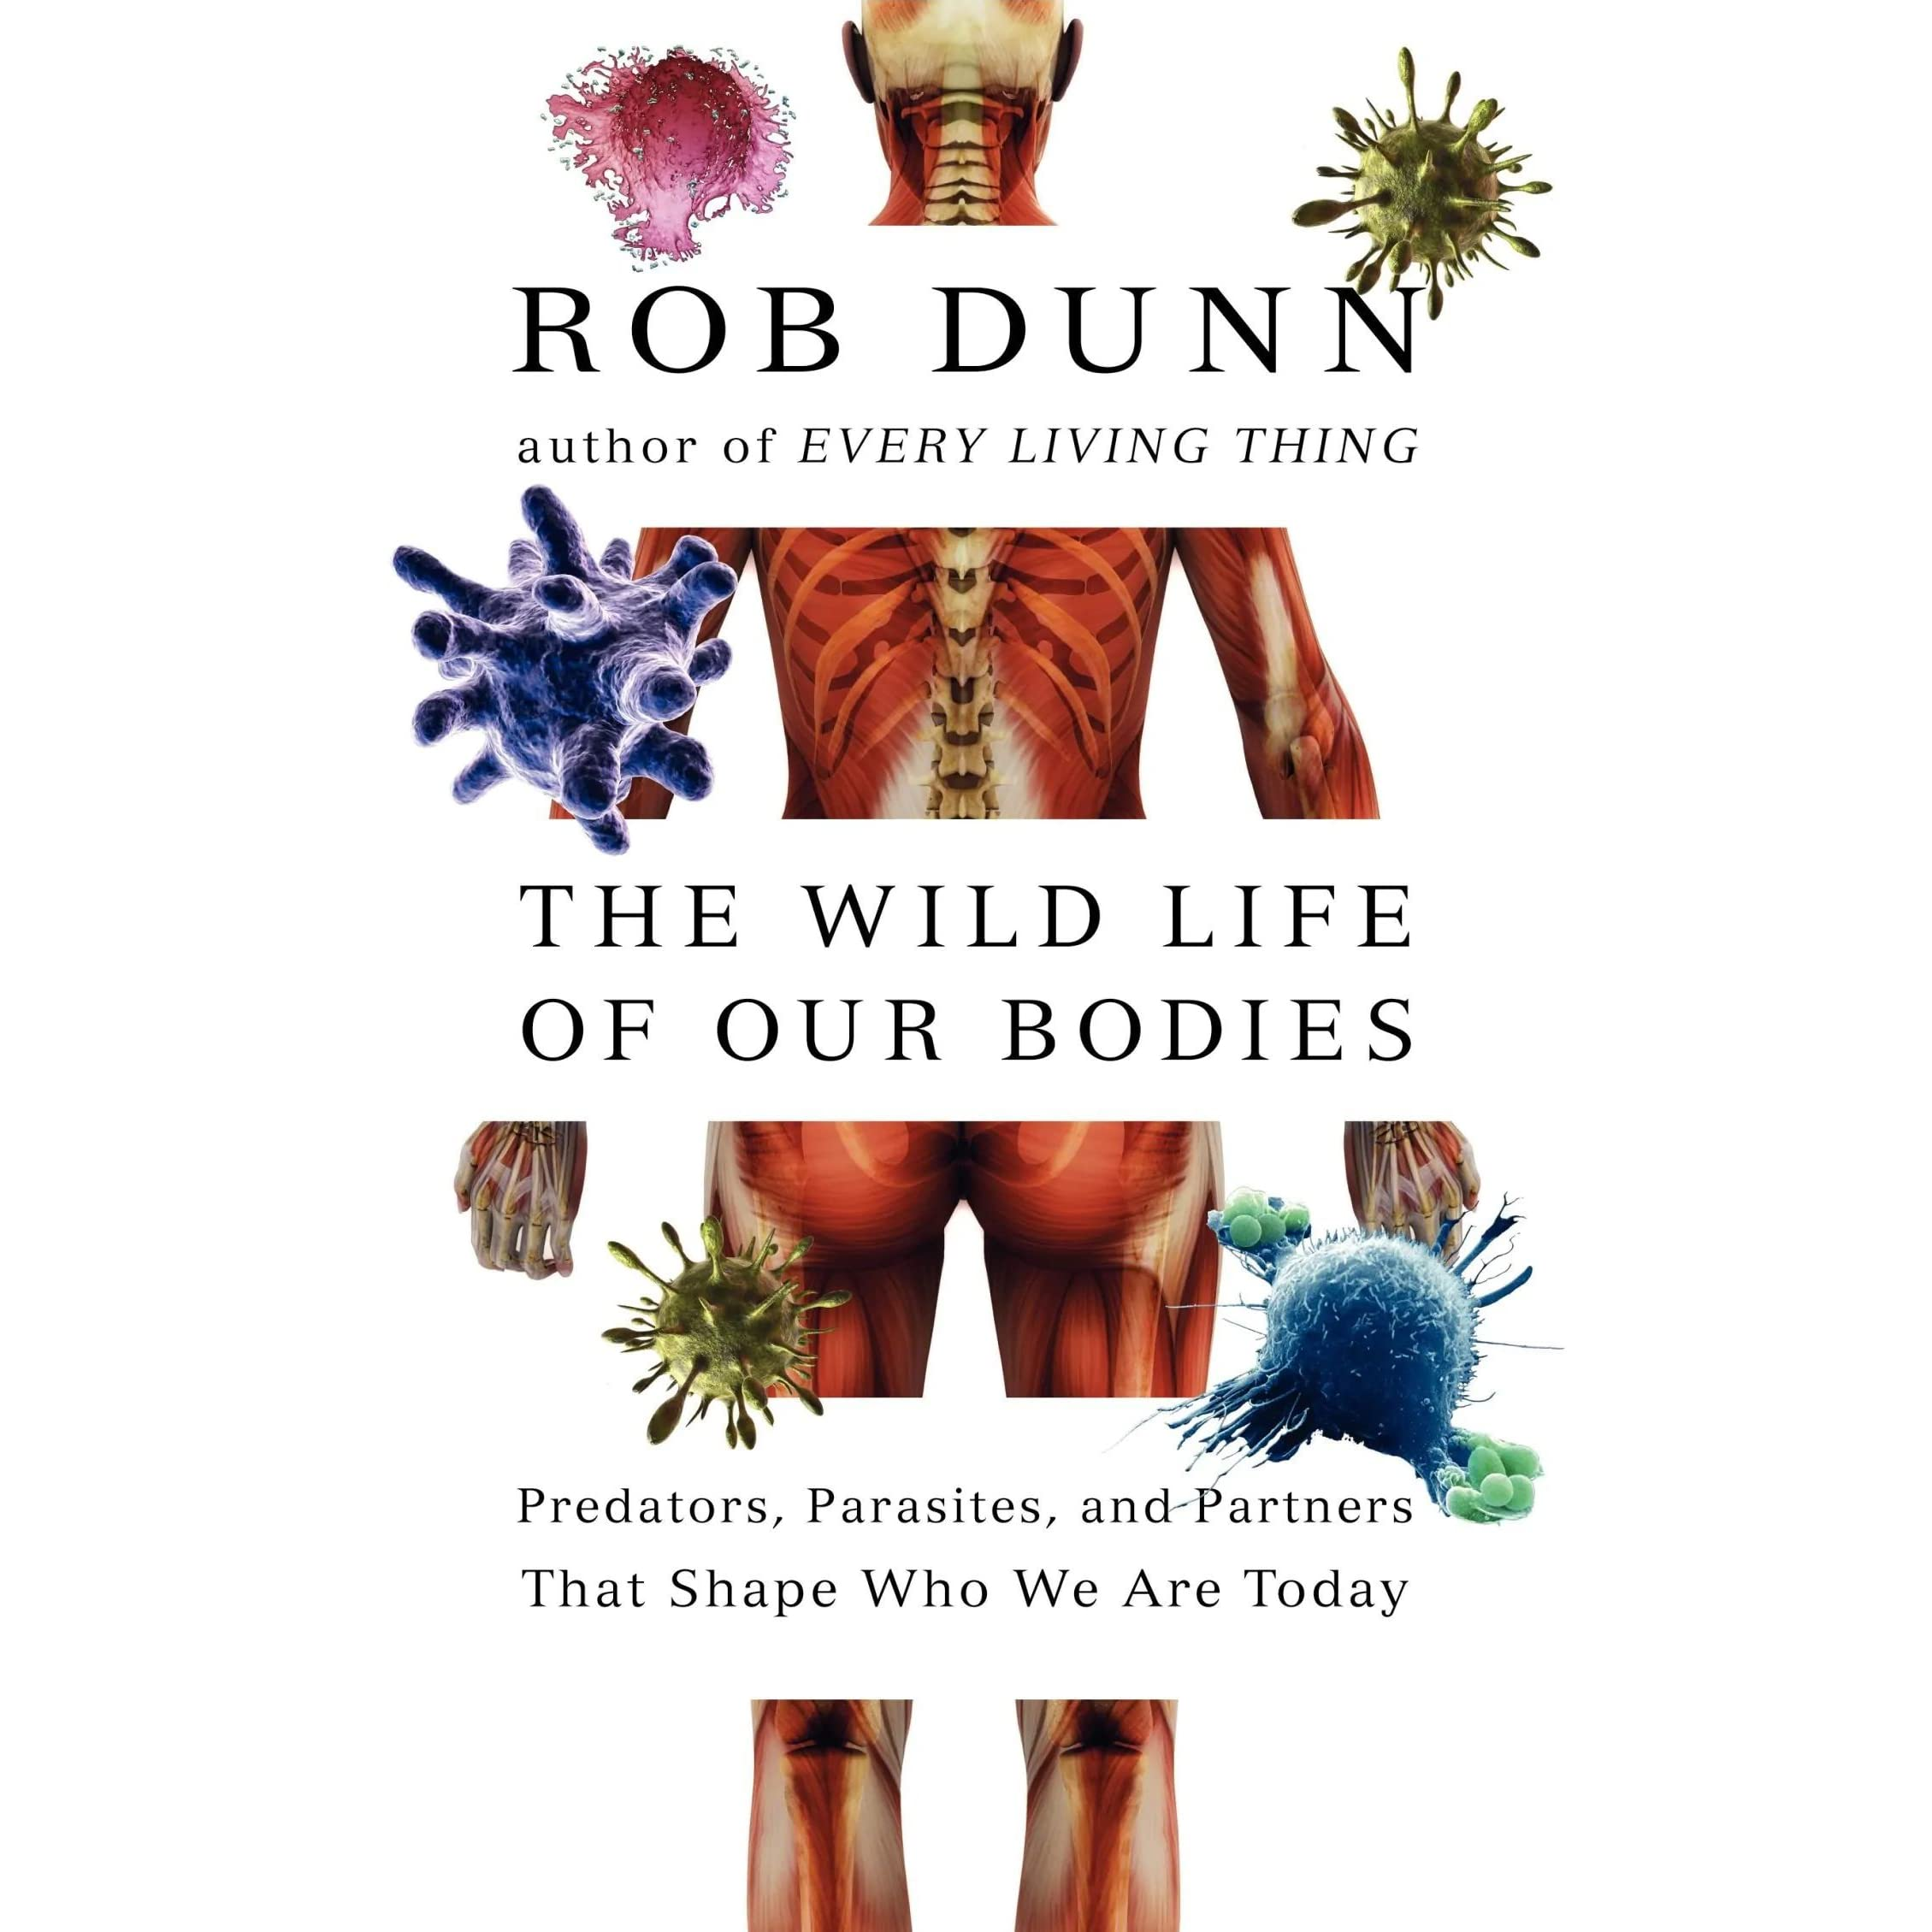 The Wild Life of Our Bodies: Predators, Parasites, and